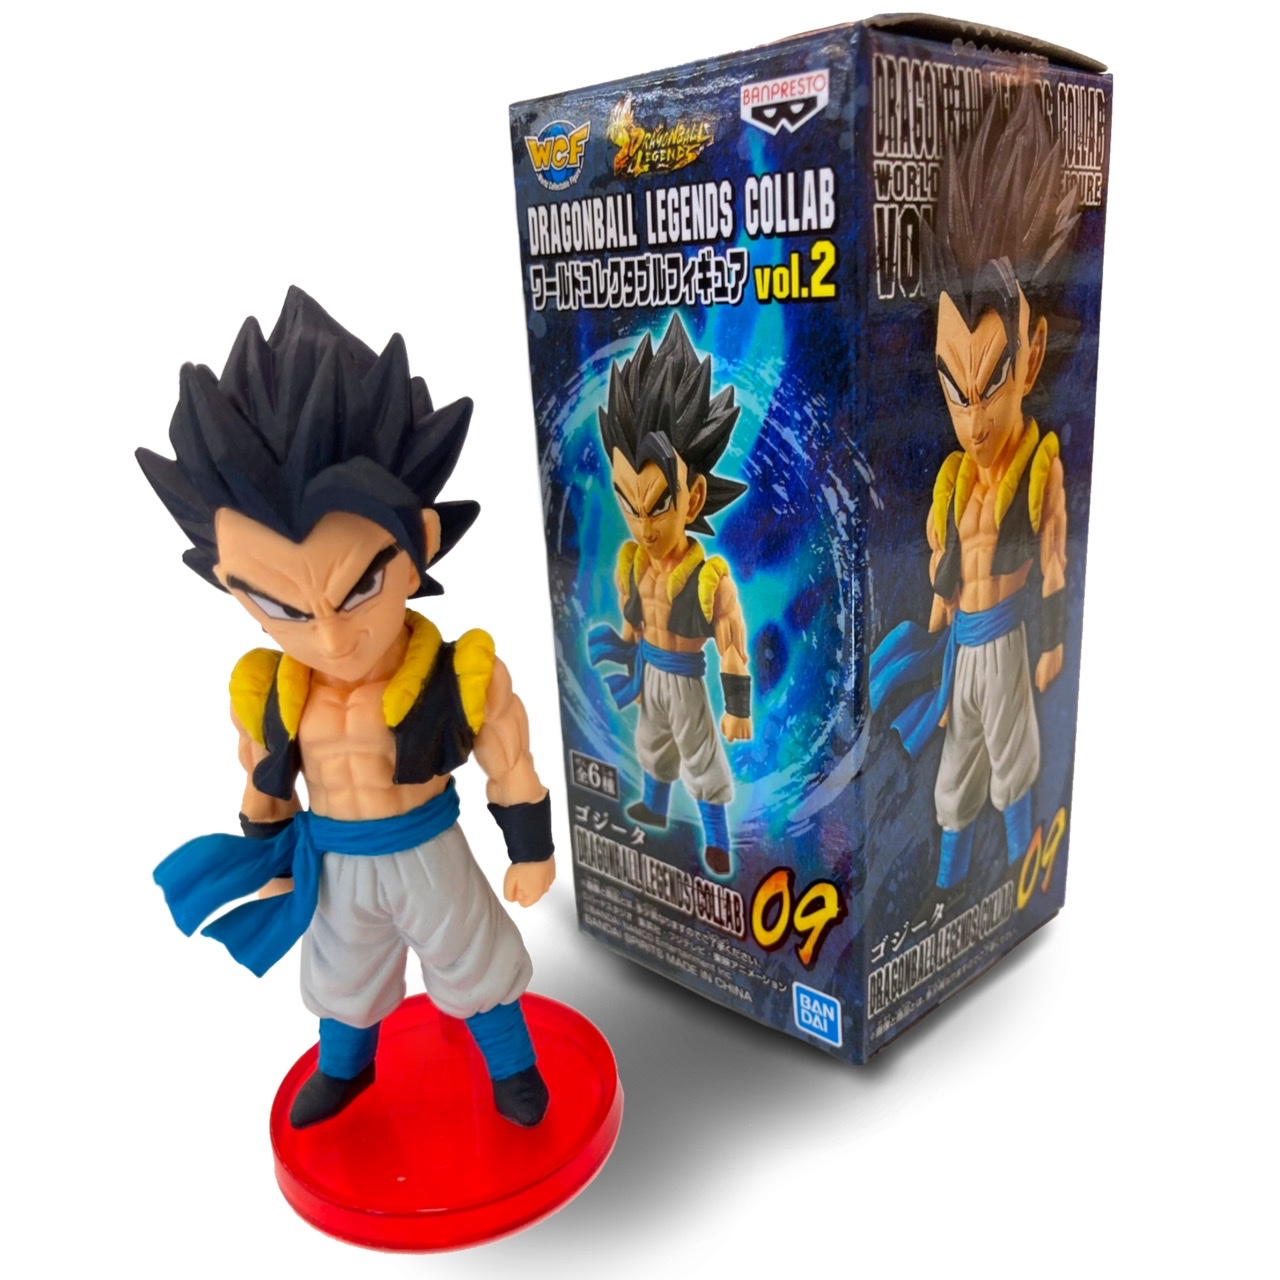 DragonBall Legends Collab; 3.5in Figure